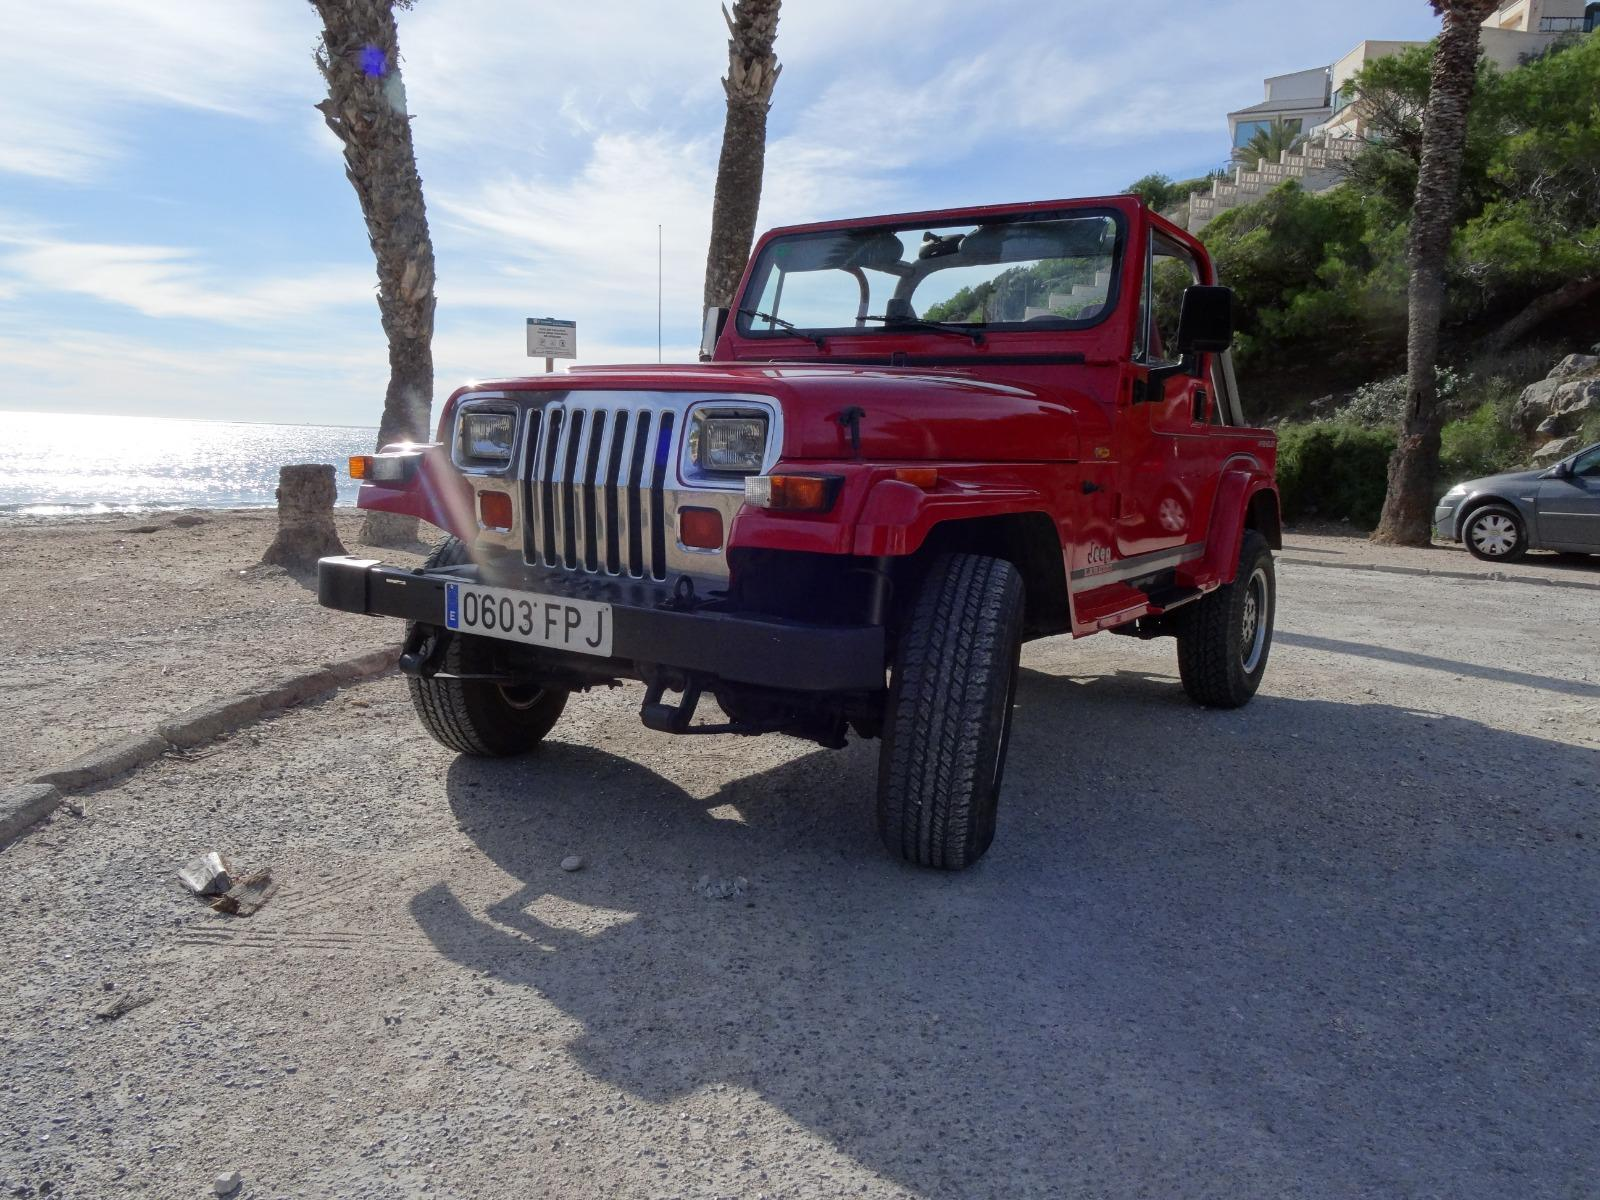 f5e6a6fde8 ... 1900 (H) Jeep Wrangler 4.0 2dr hard top left hand drive For Sale In ...